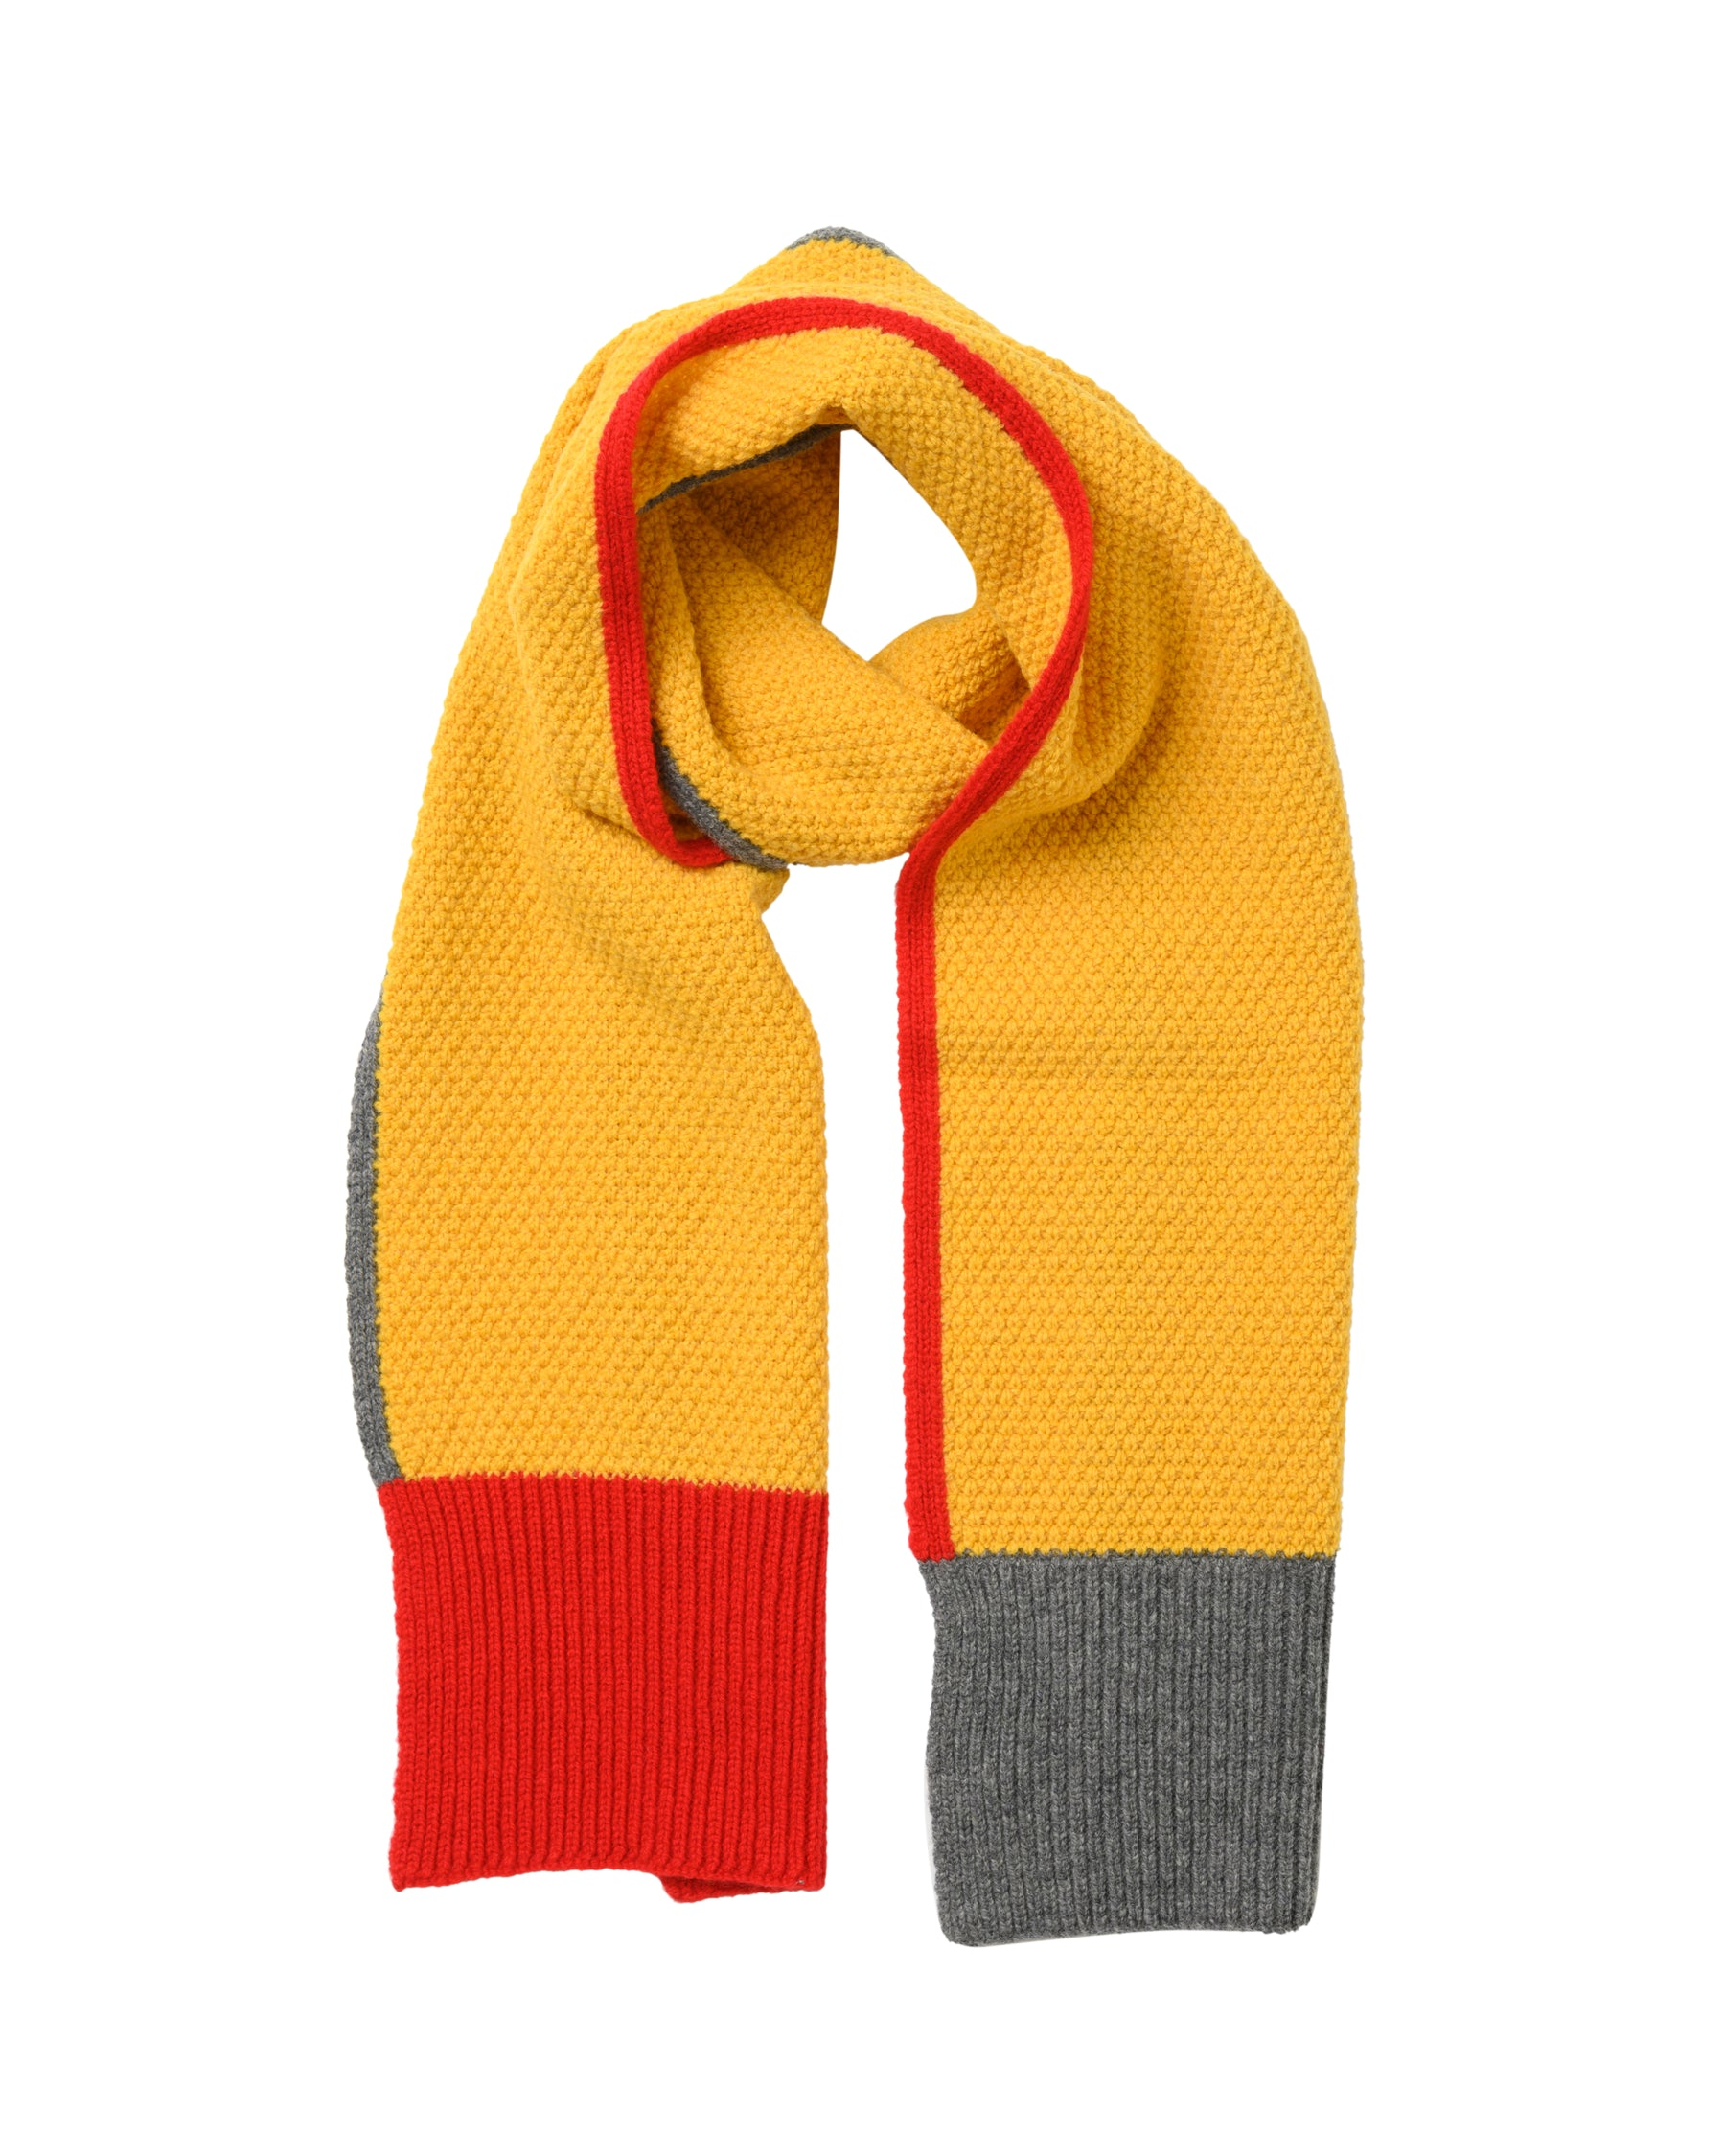 Honeycomb Lambswool Scarf • Yellow